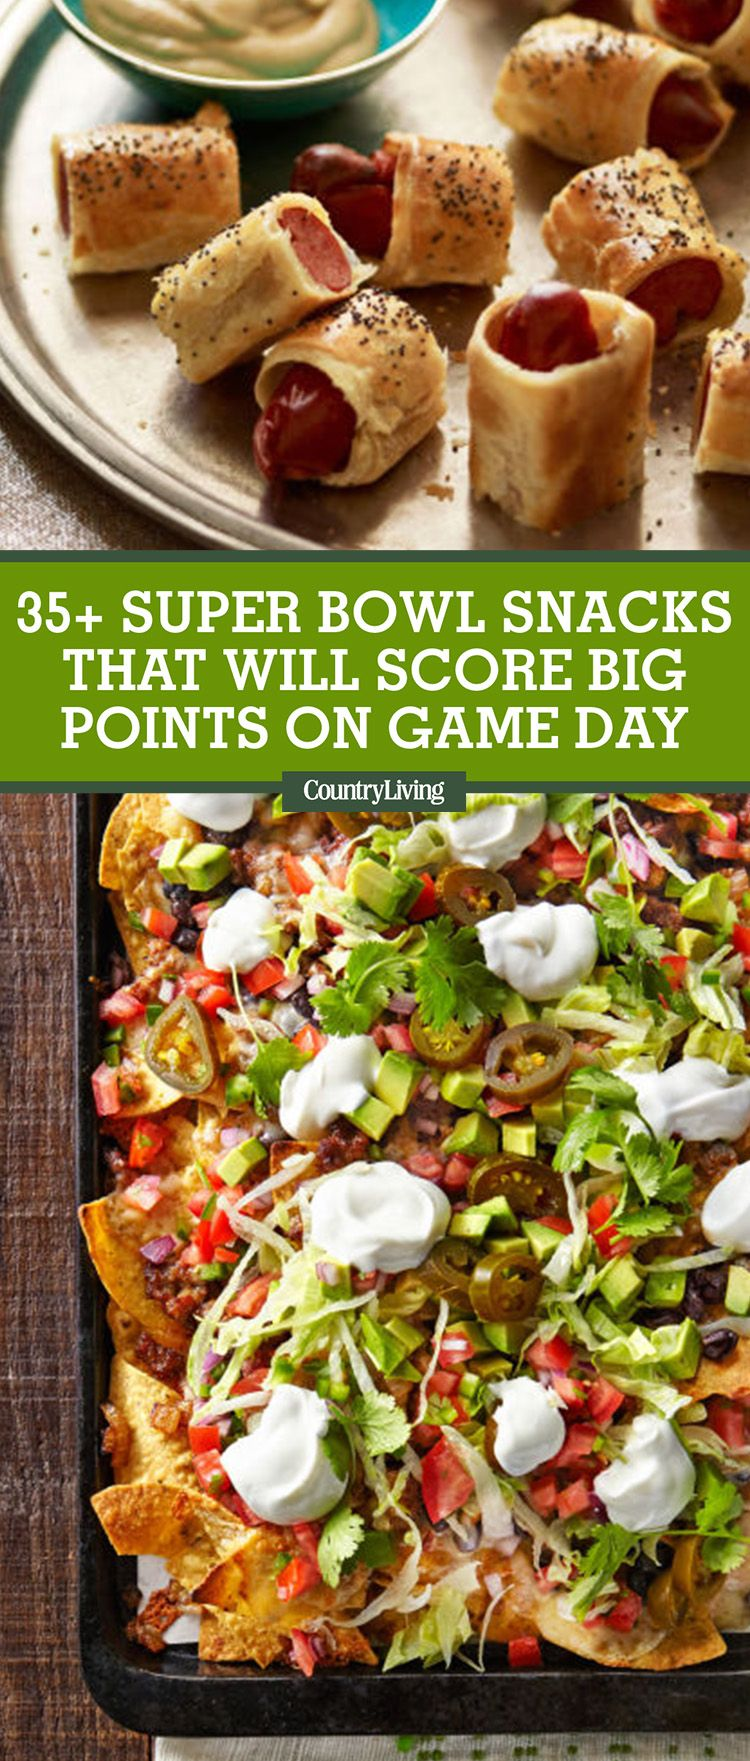 Super Bowl Snacks recommendations